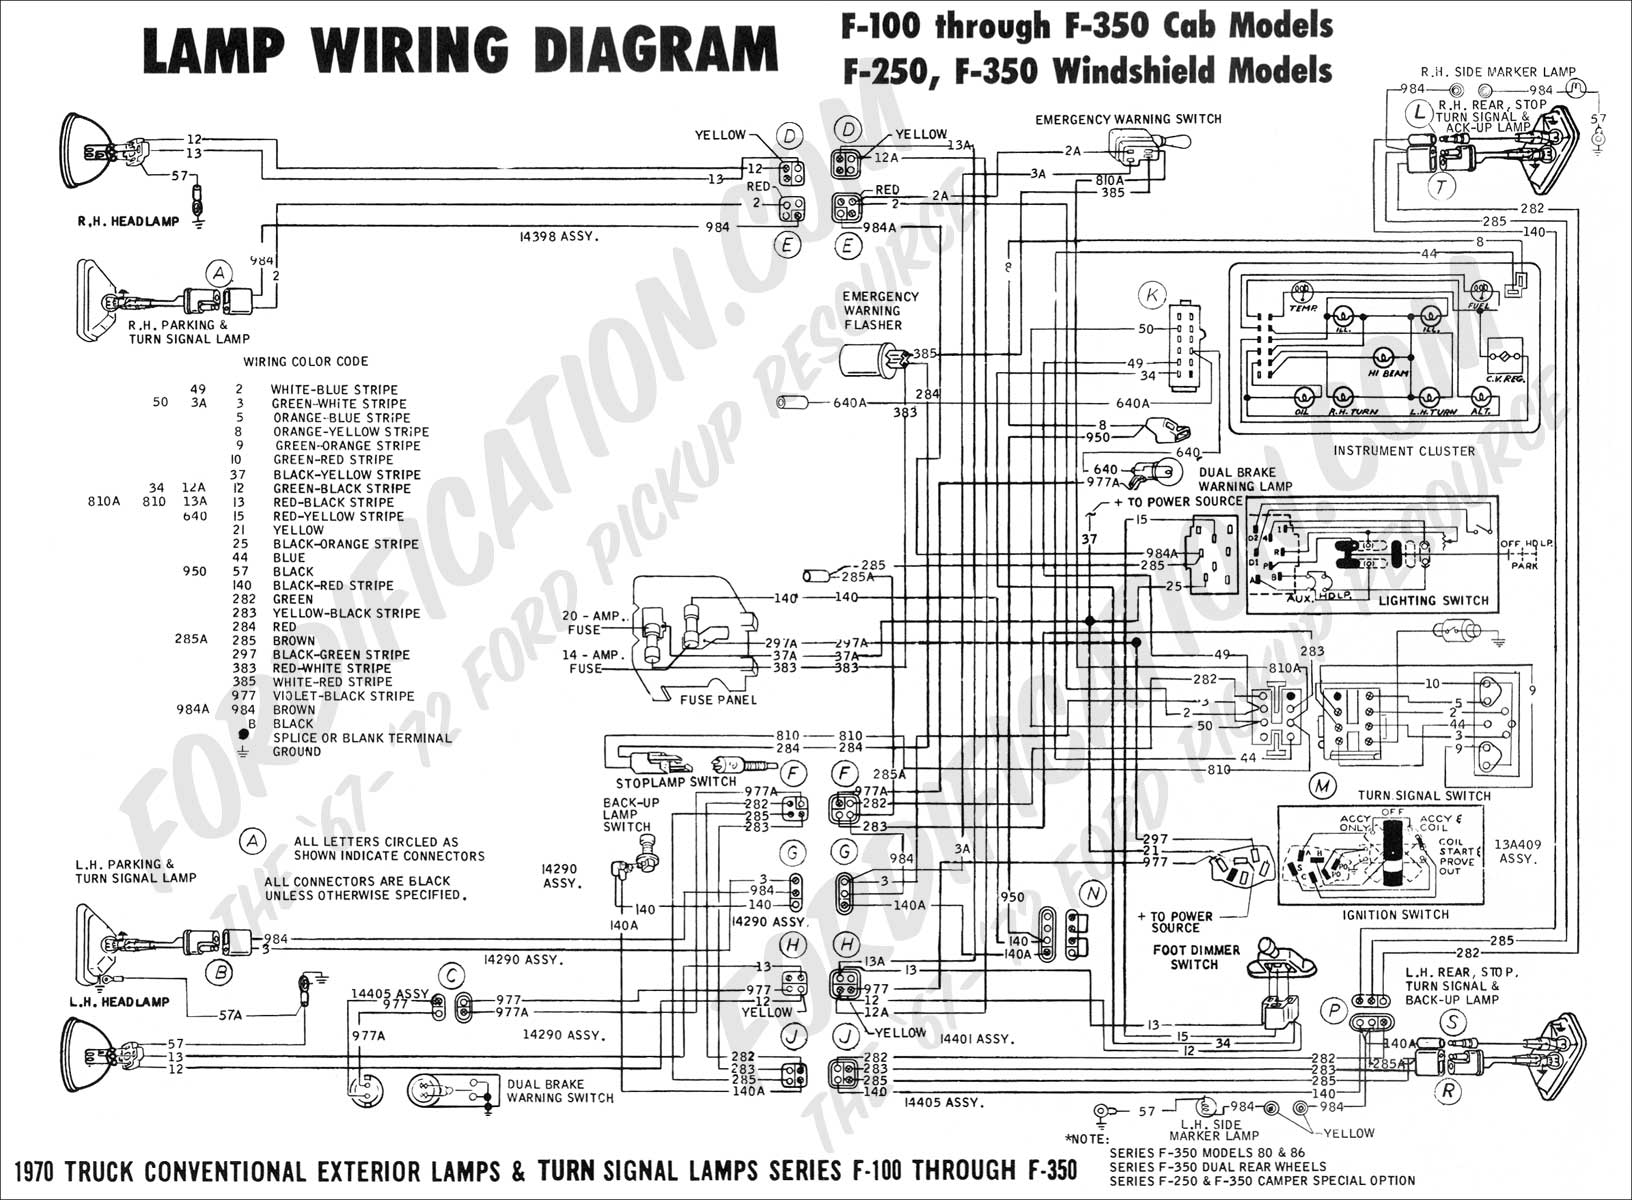 ford truck technical drawings and schematics section h wiring 1970 f 100 f250 lamp wiring 01